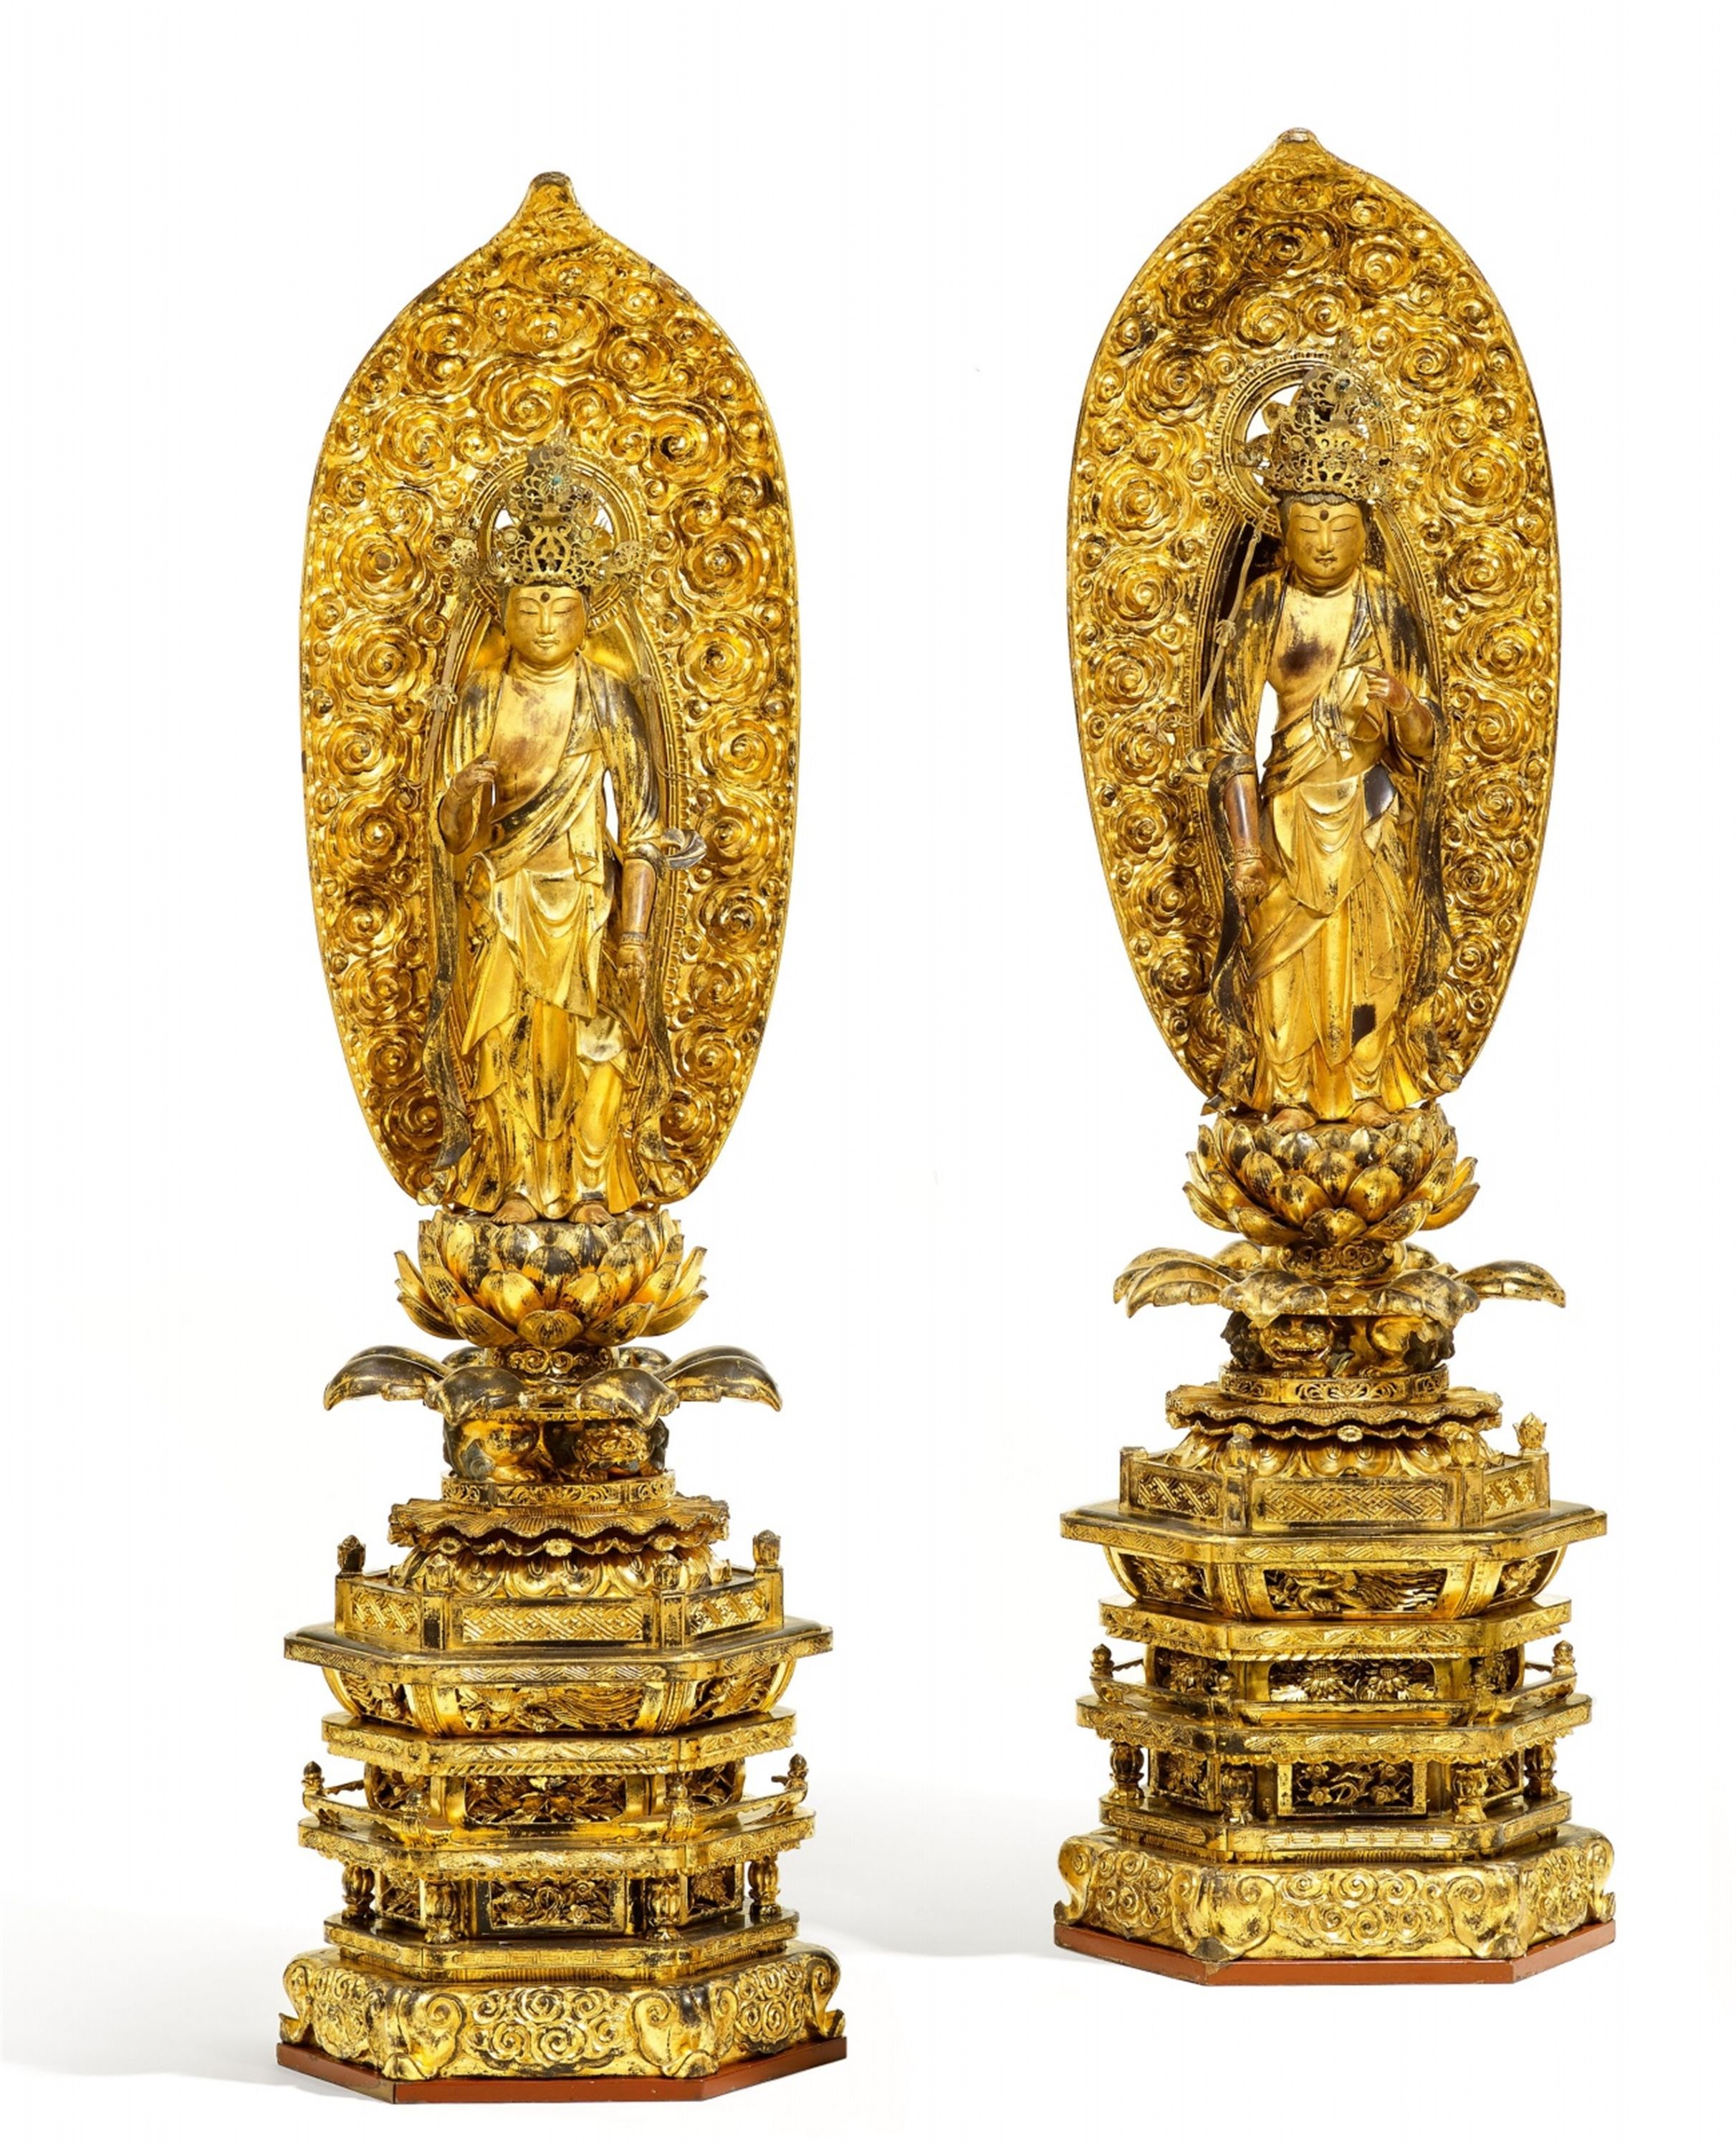 Two large gilt and lacquered wood figures of Seishi Bosatsu and Kannon Bosatsu. Dated 1747